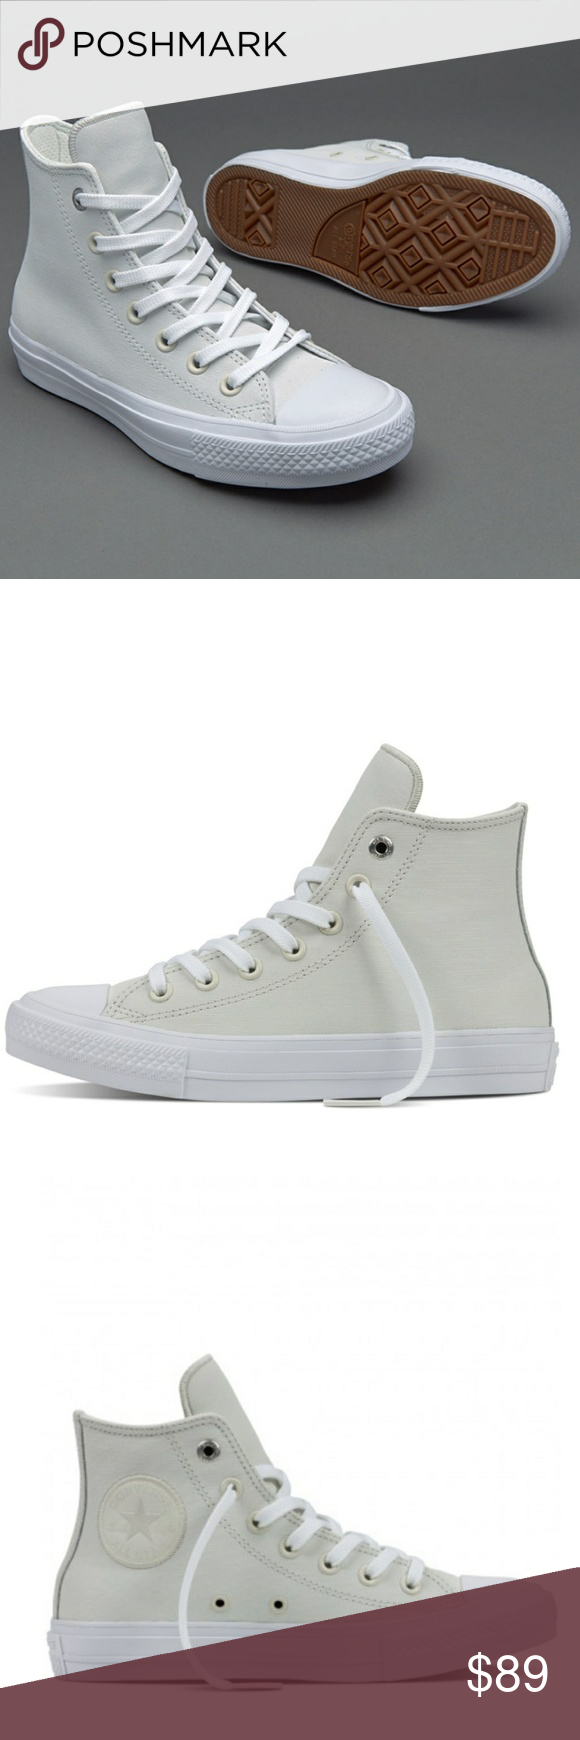 Converse Lunarlon Insole For Sale Sale Nwt Converse Chuck Ii 2 Leather Buff Shoes Nwt Converse